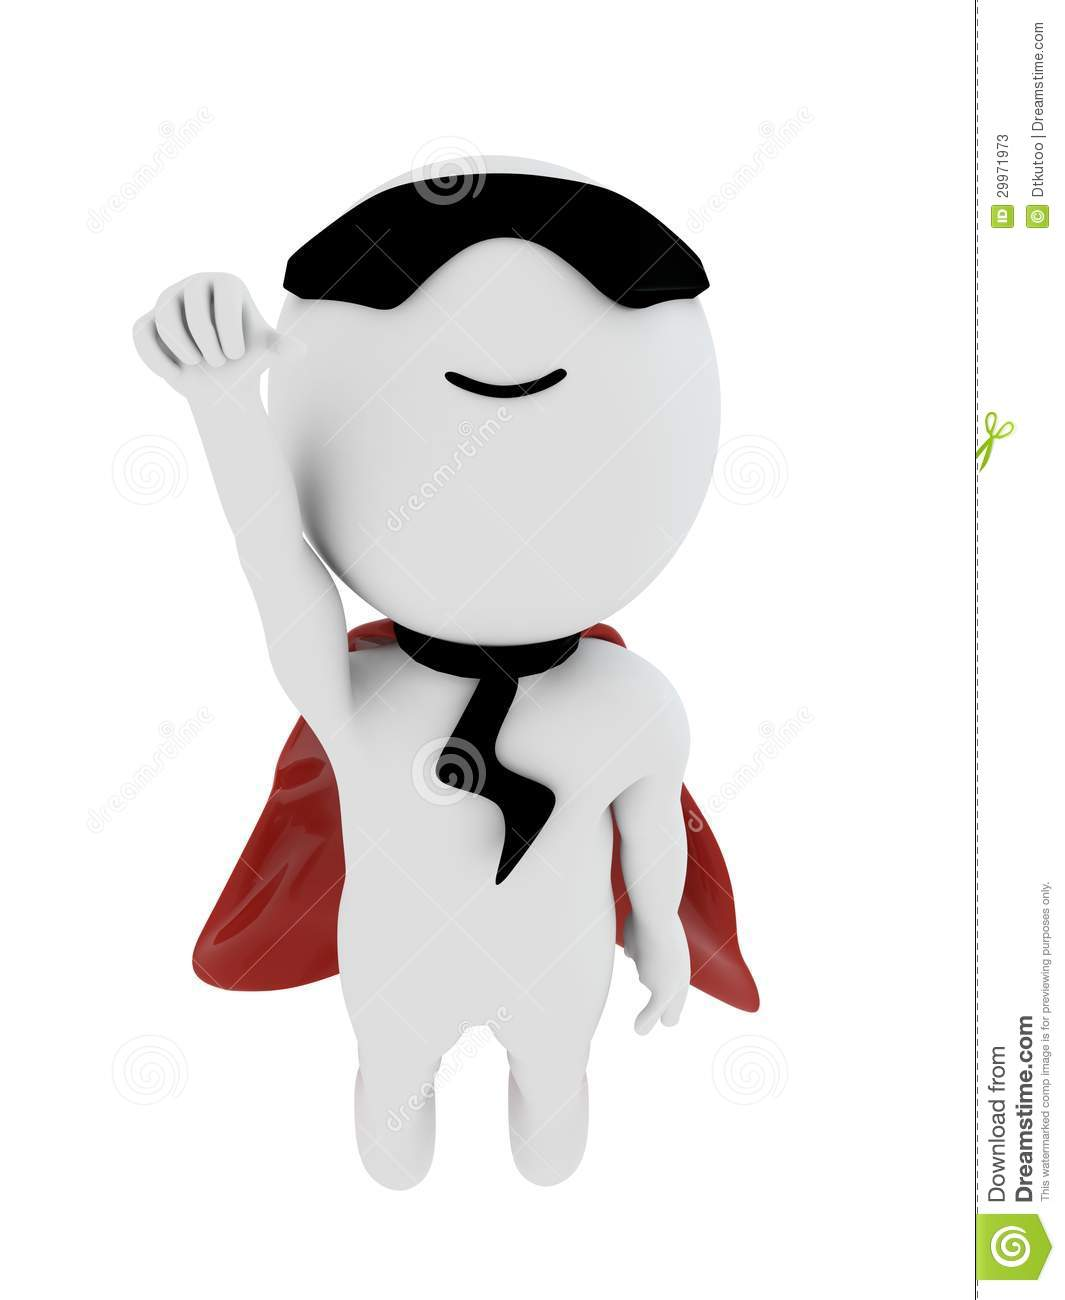 3d small people as super hero stock image image 29971731 - 3d Small People As Super Hero Stock Image Image 29971731 2